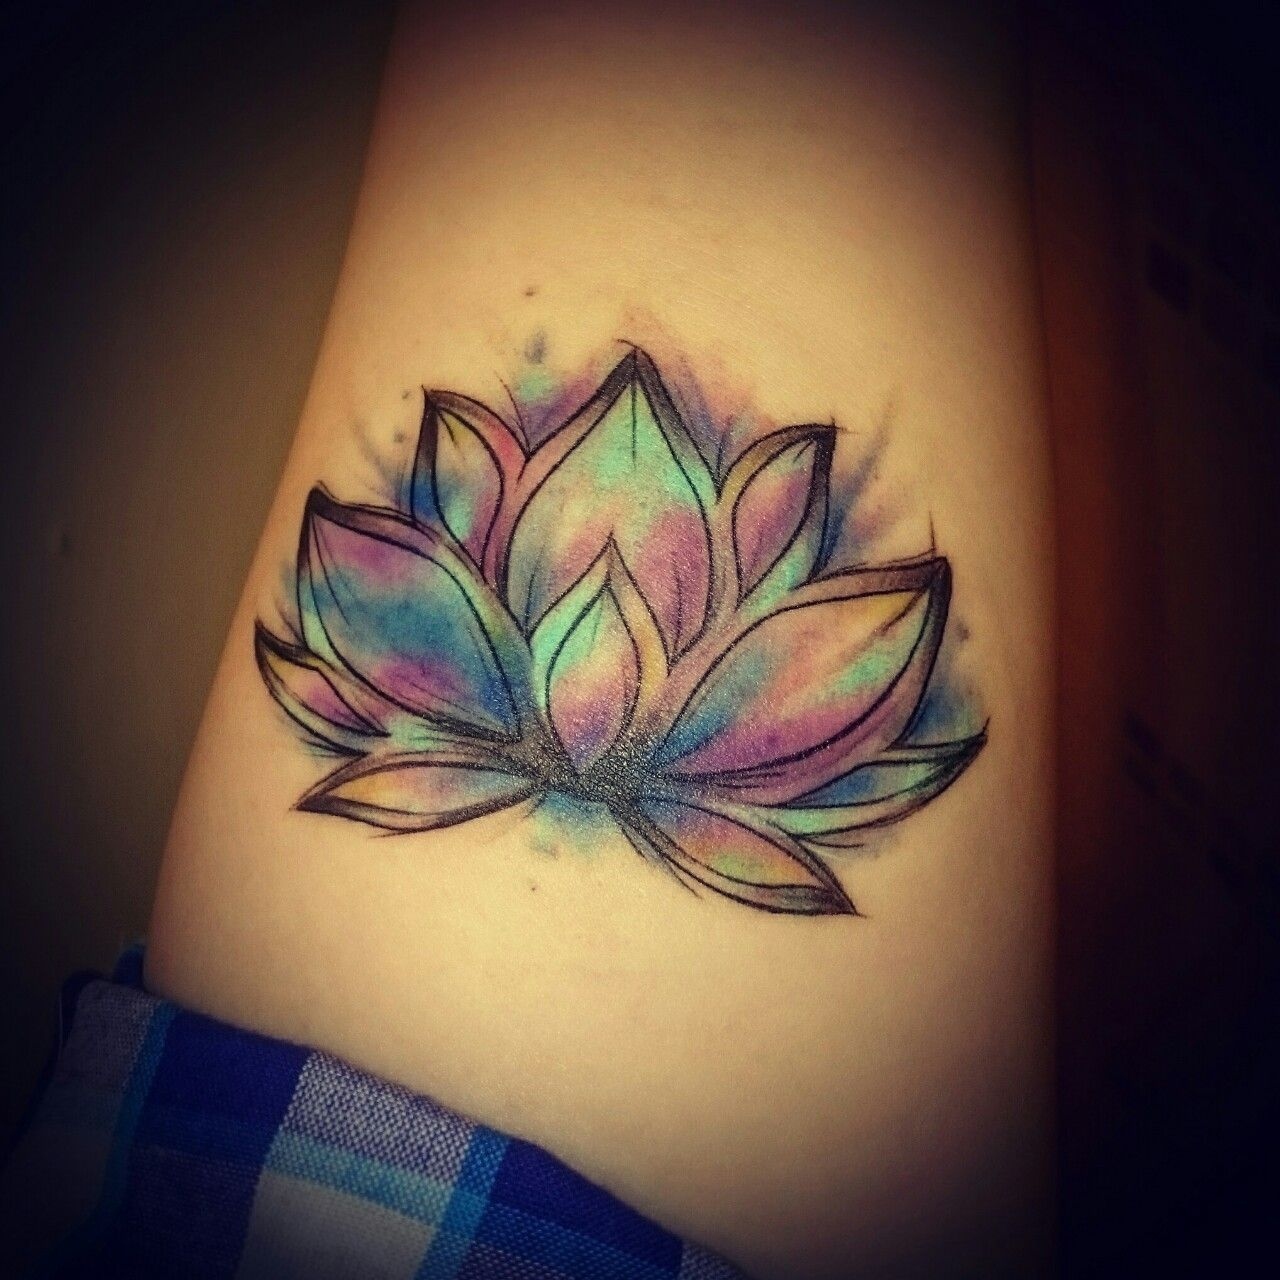 My New Tattoo Its A Lotus The Flower Retreats Back Into The Water